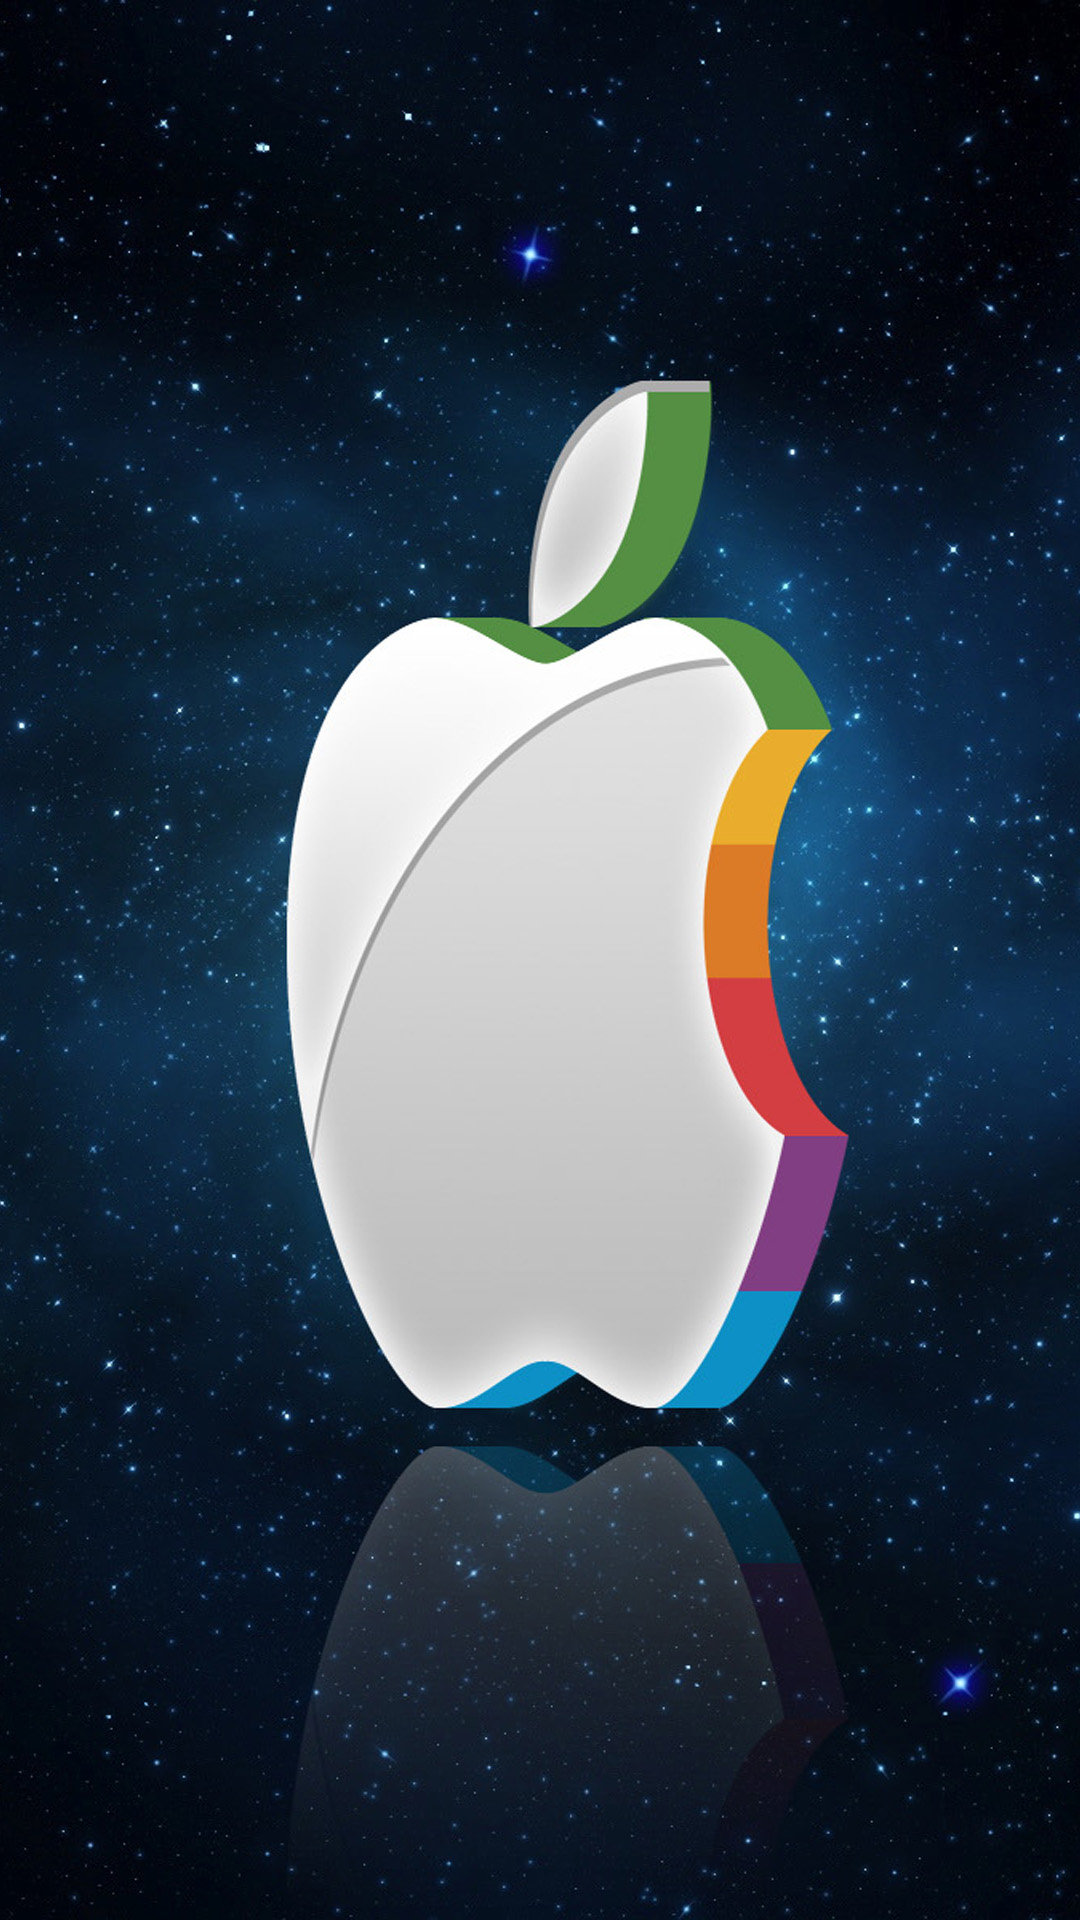 3d apple logo in space - walls iphone